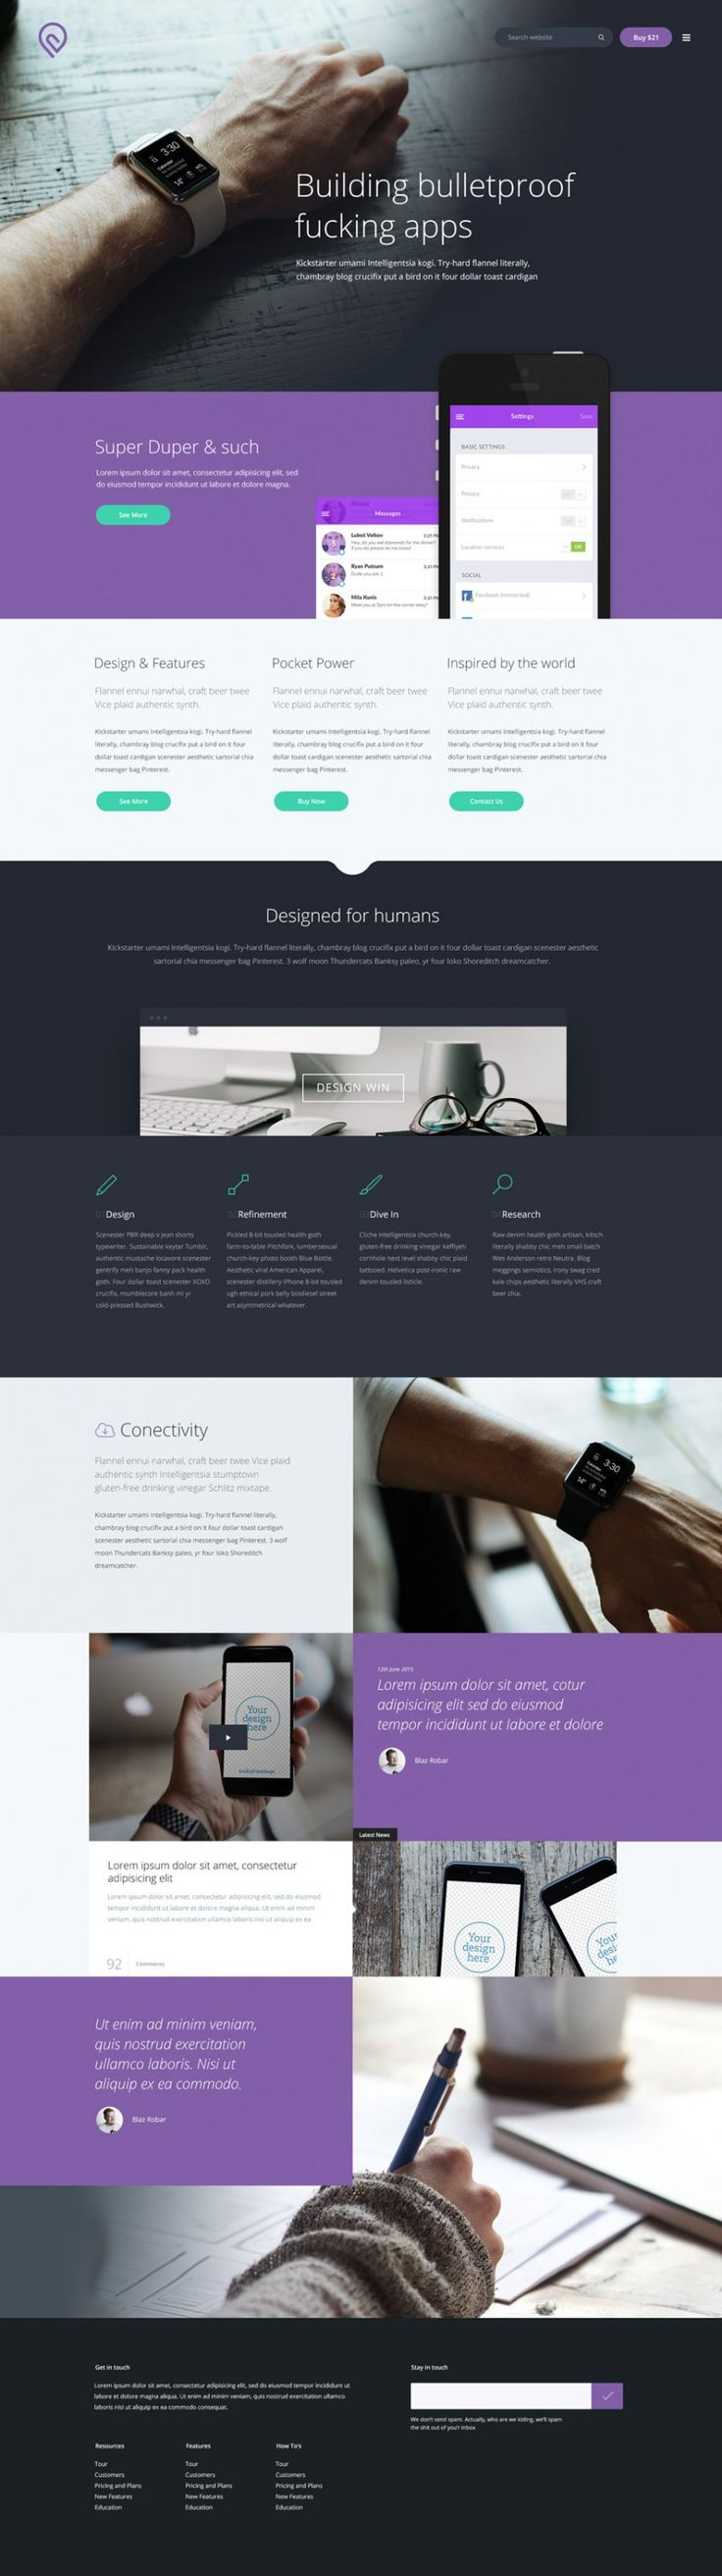 Tork Free PSD website template                                                                                                                                                     More